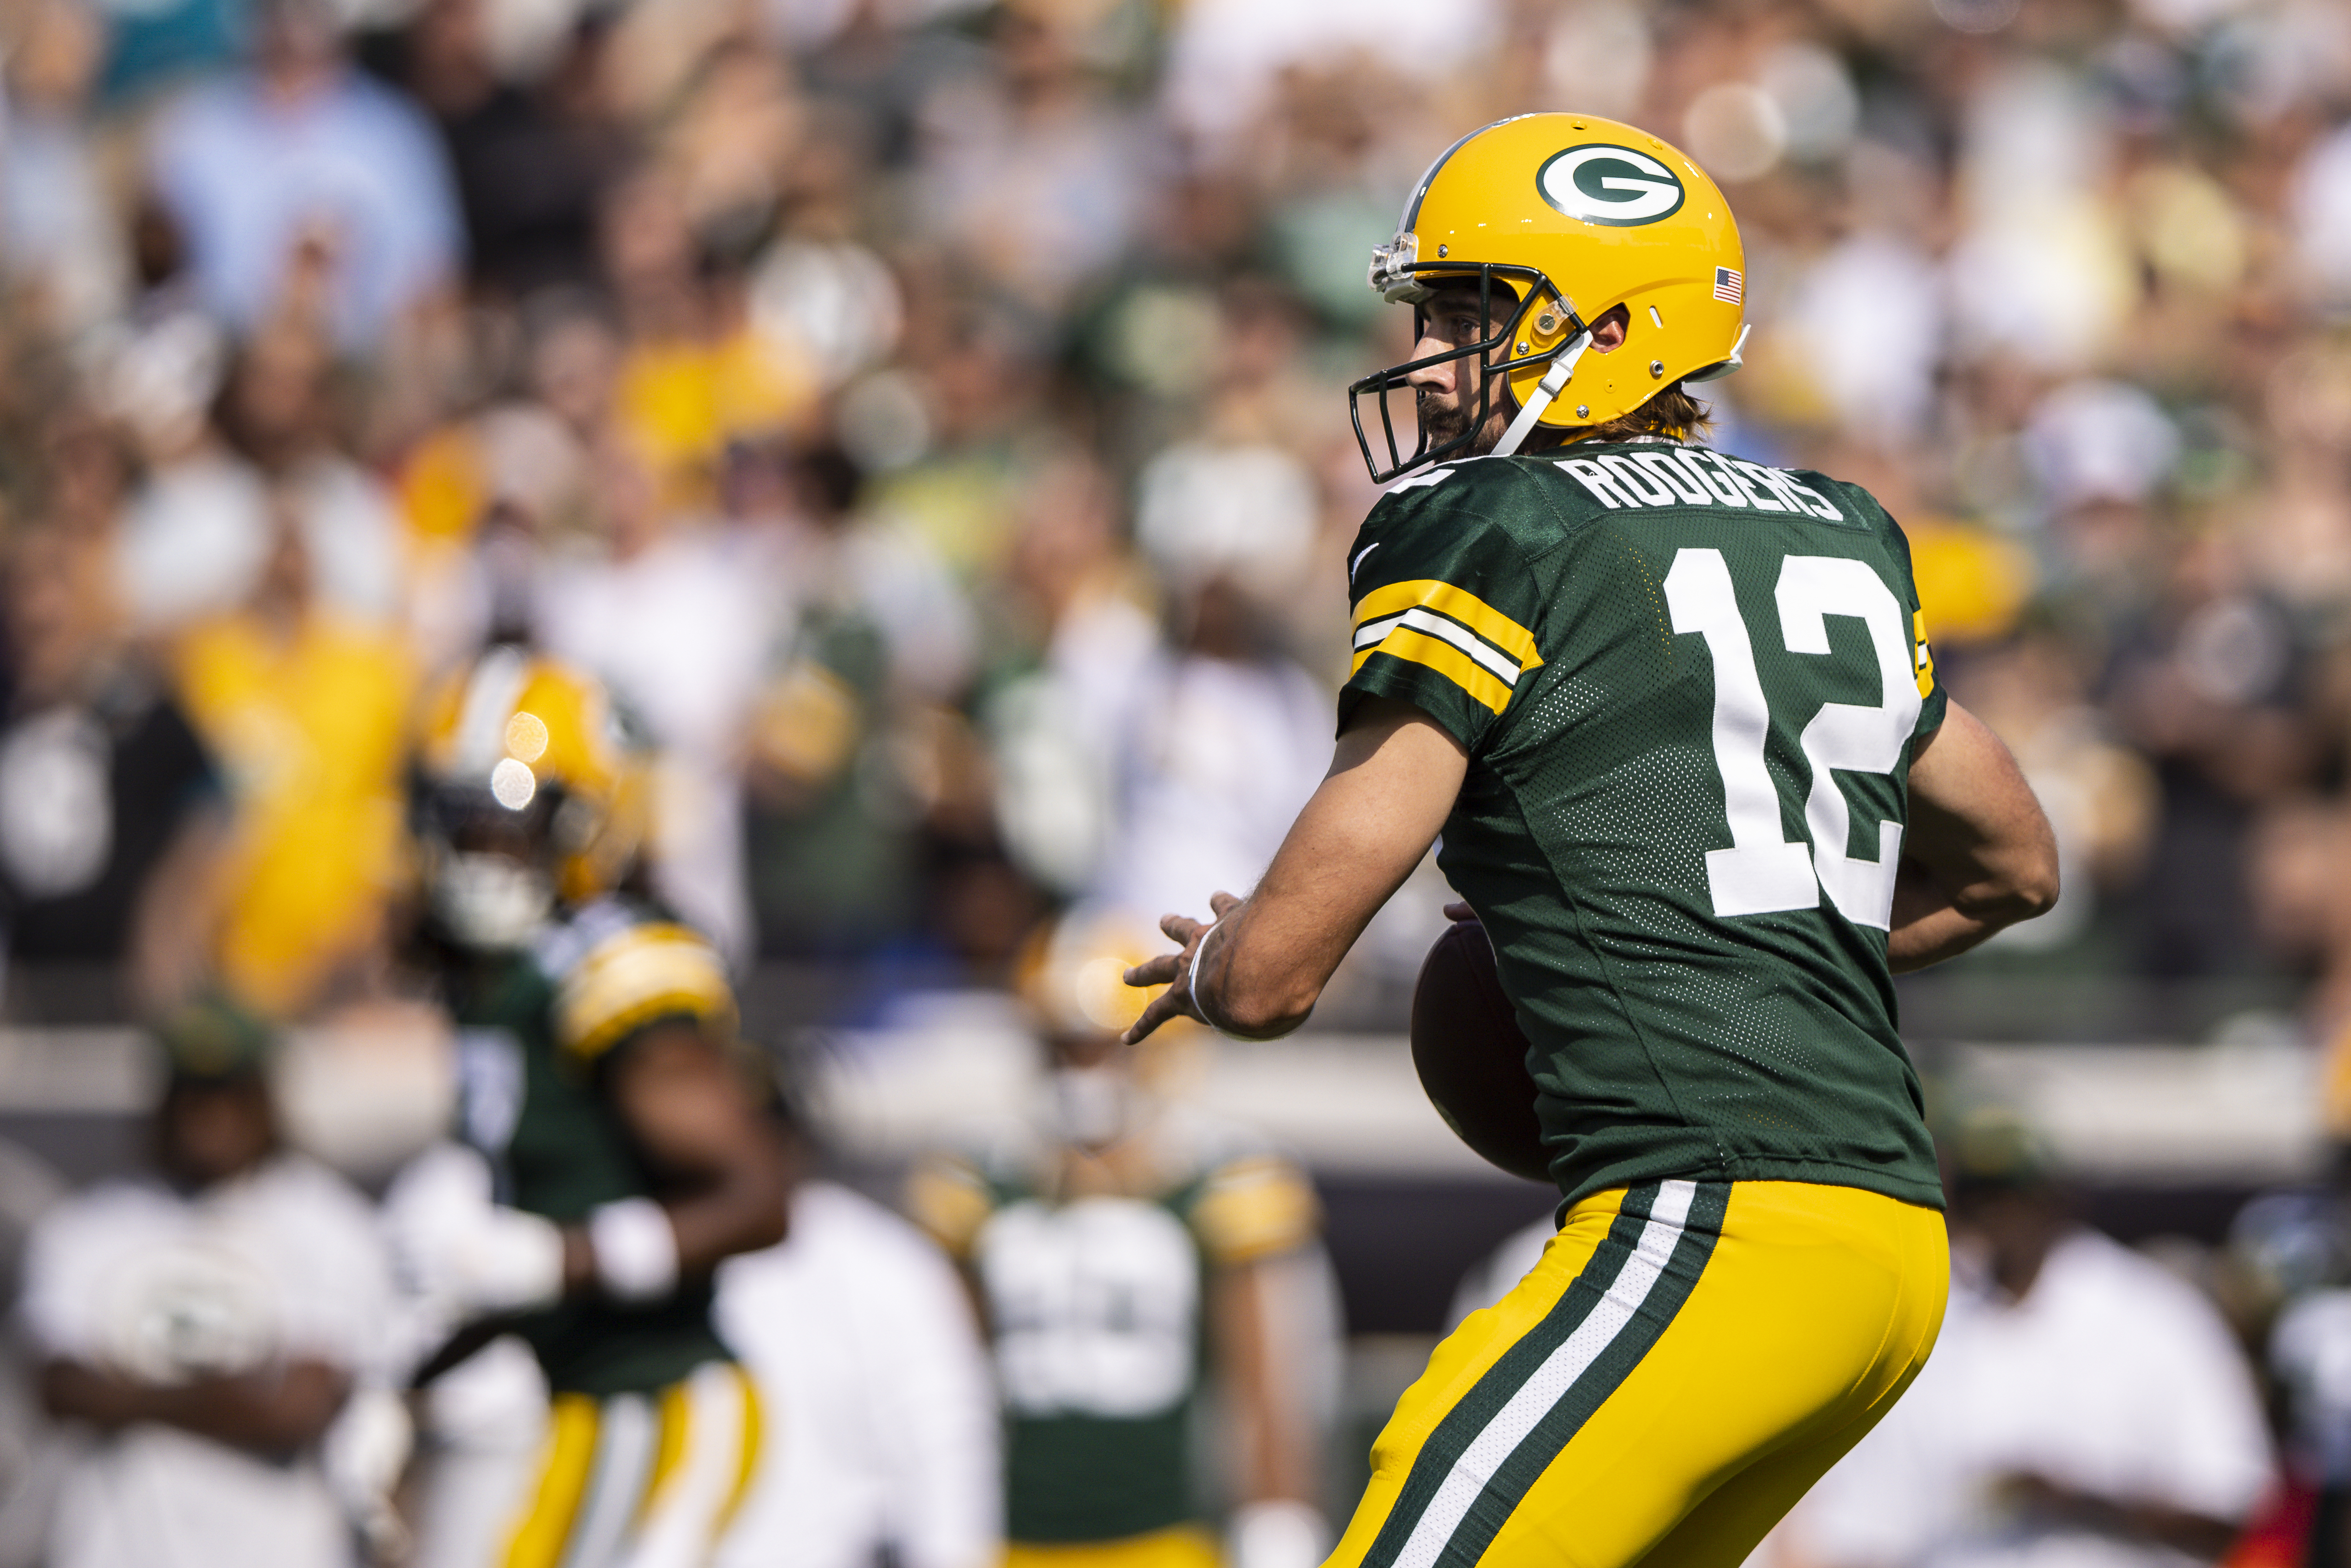 Aaron Rodgers #12 of the Green Bay Packers looks to pass during the first quarter of a game against the New Orleans Saints at TIAA Bank Field on September 12, 2021 in Jacksonville, Florida.